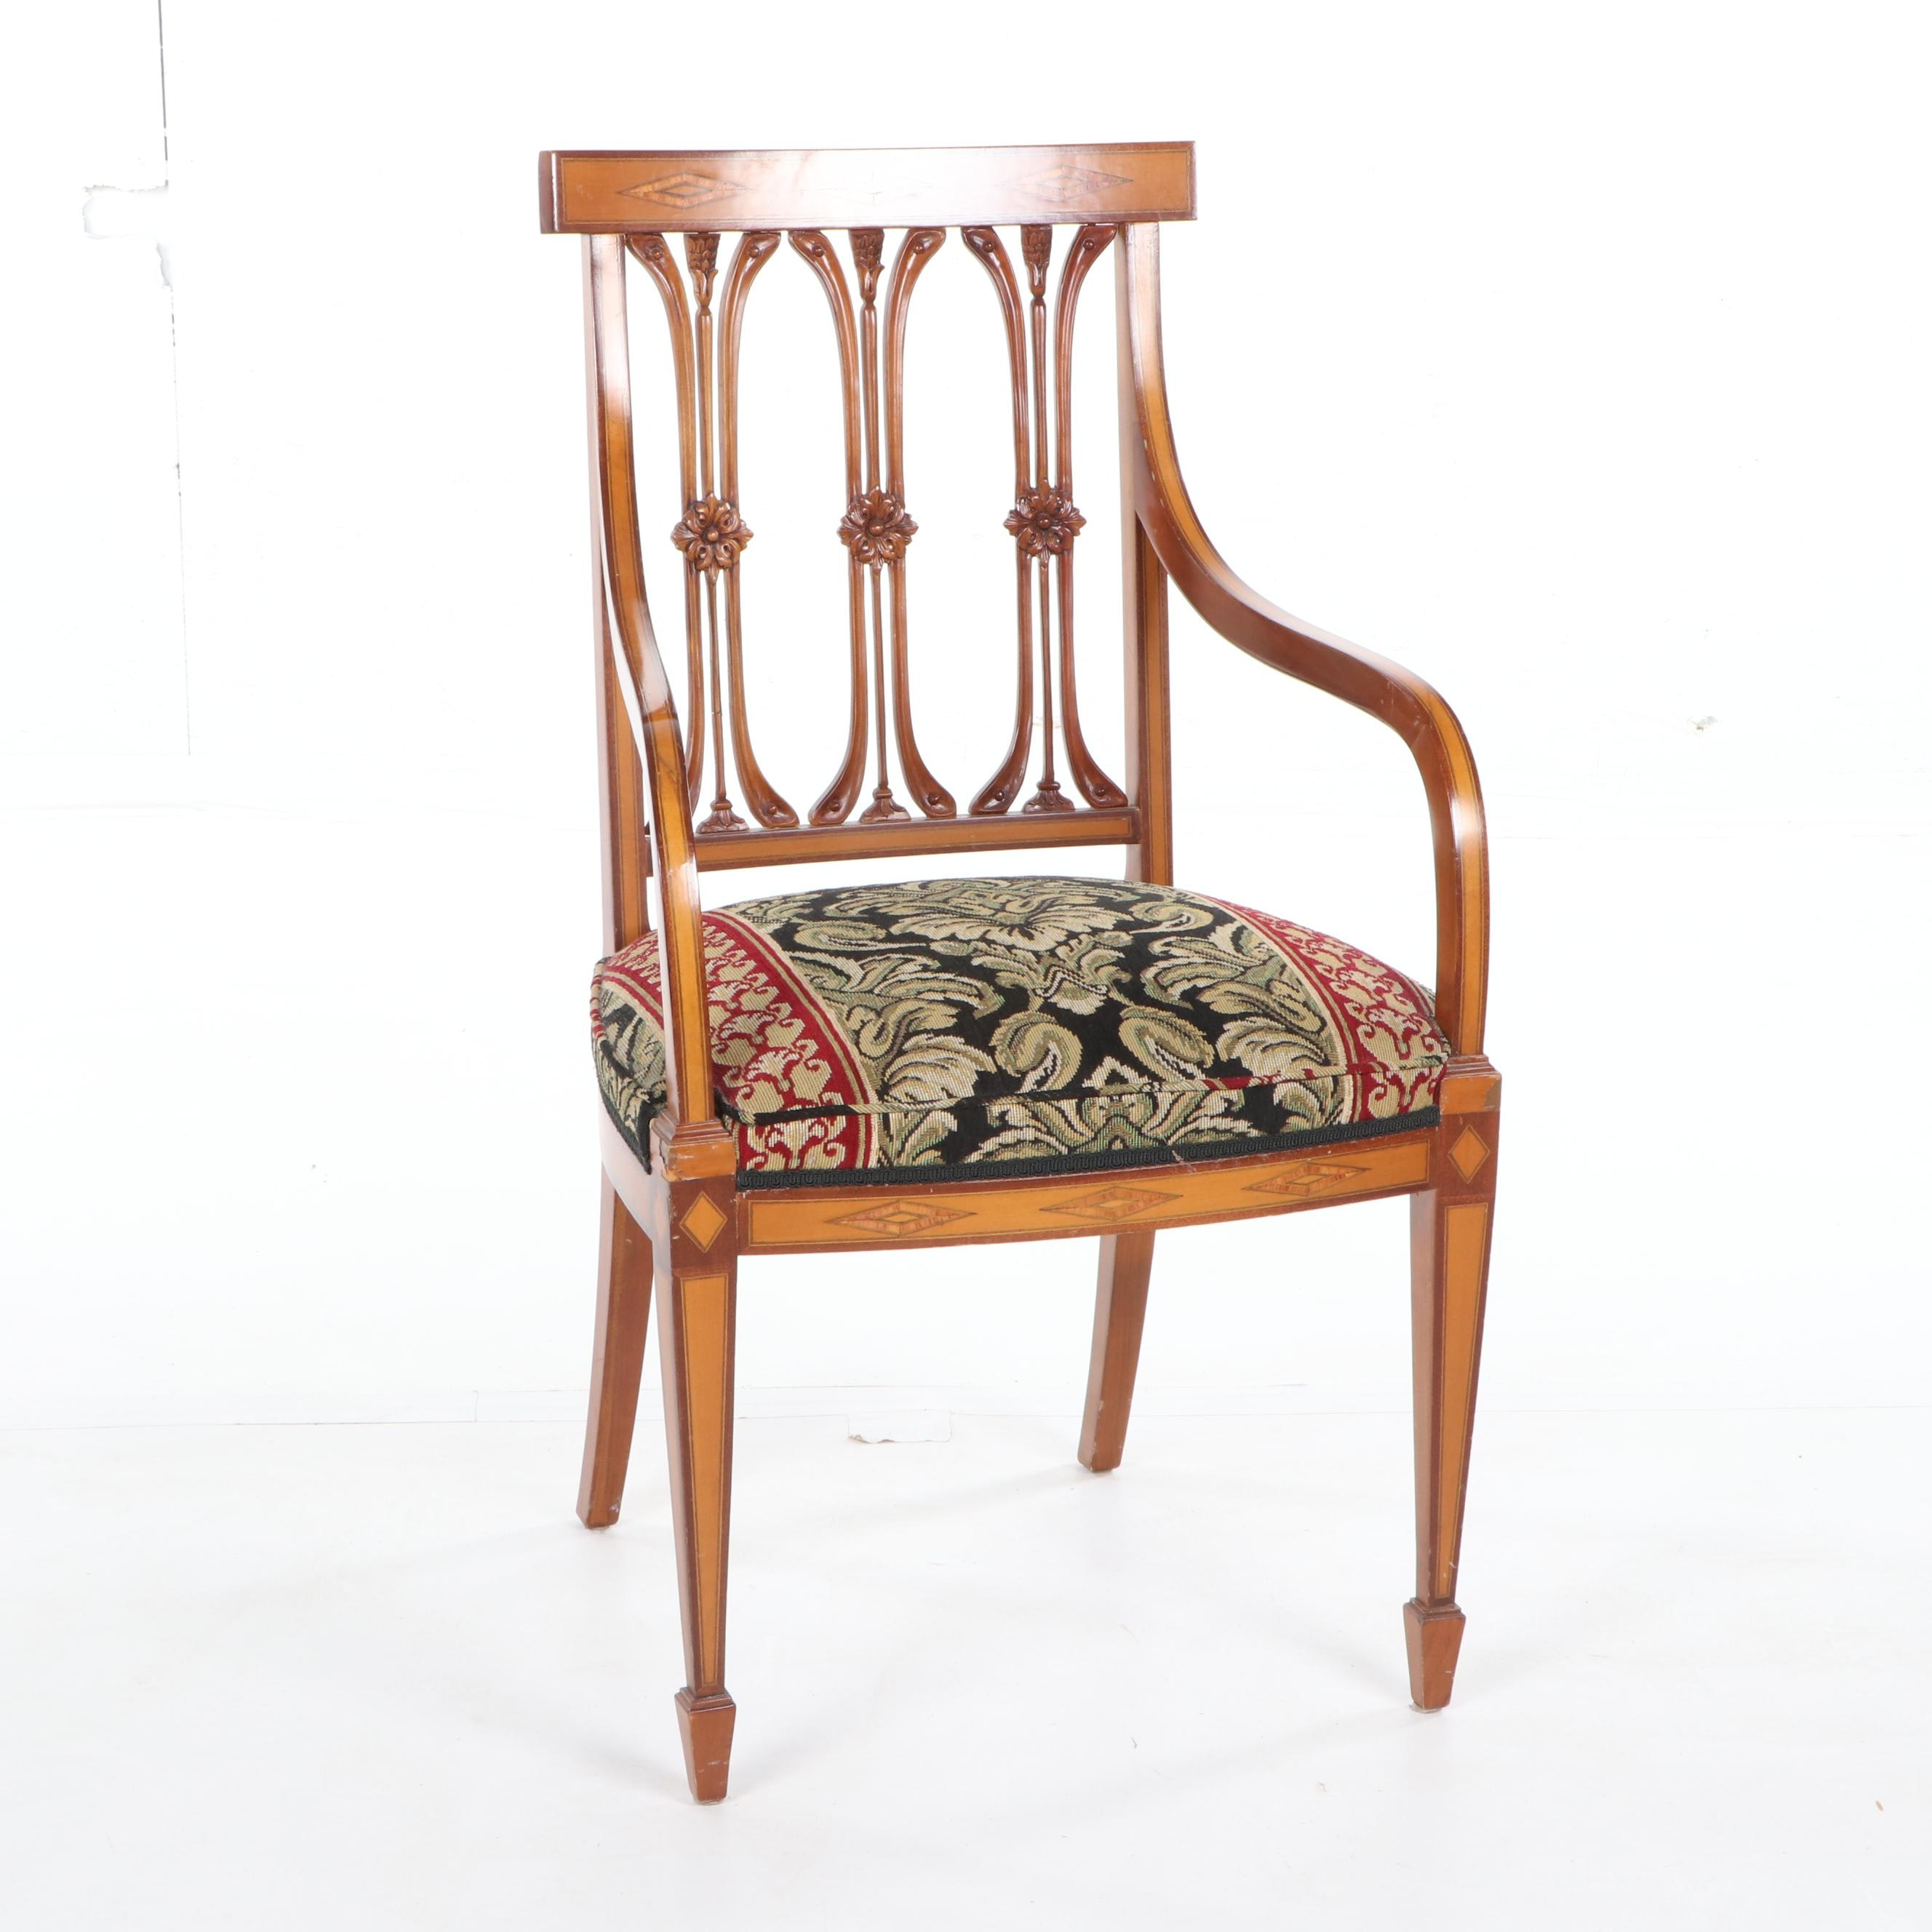 Federal Style Maple Frame Upholstered Armchair, Mid-20th Century